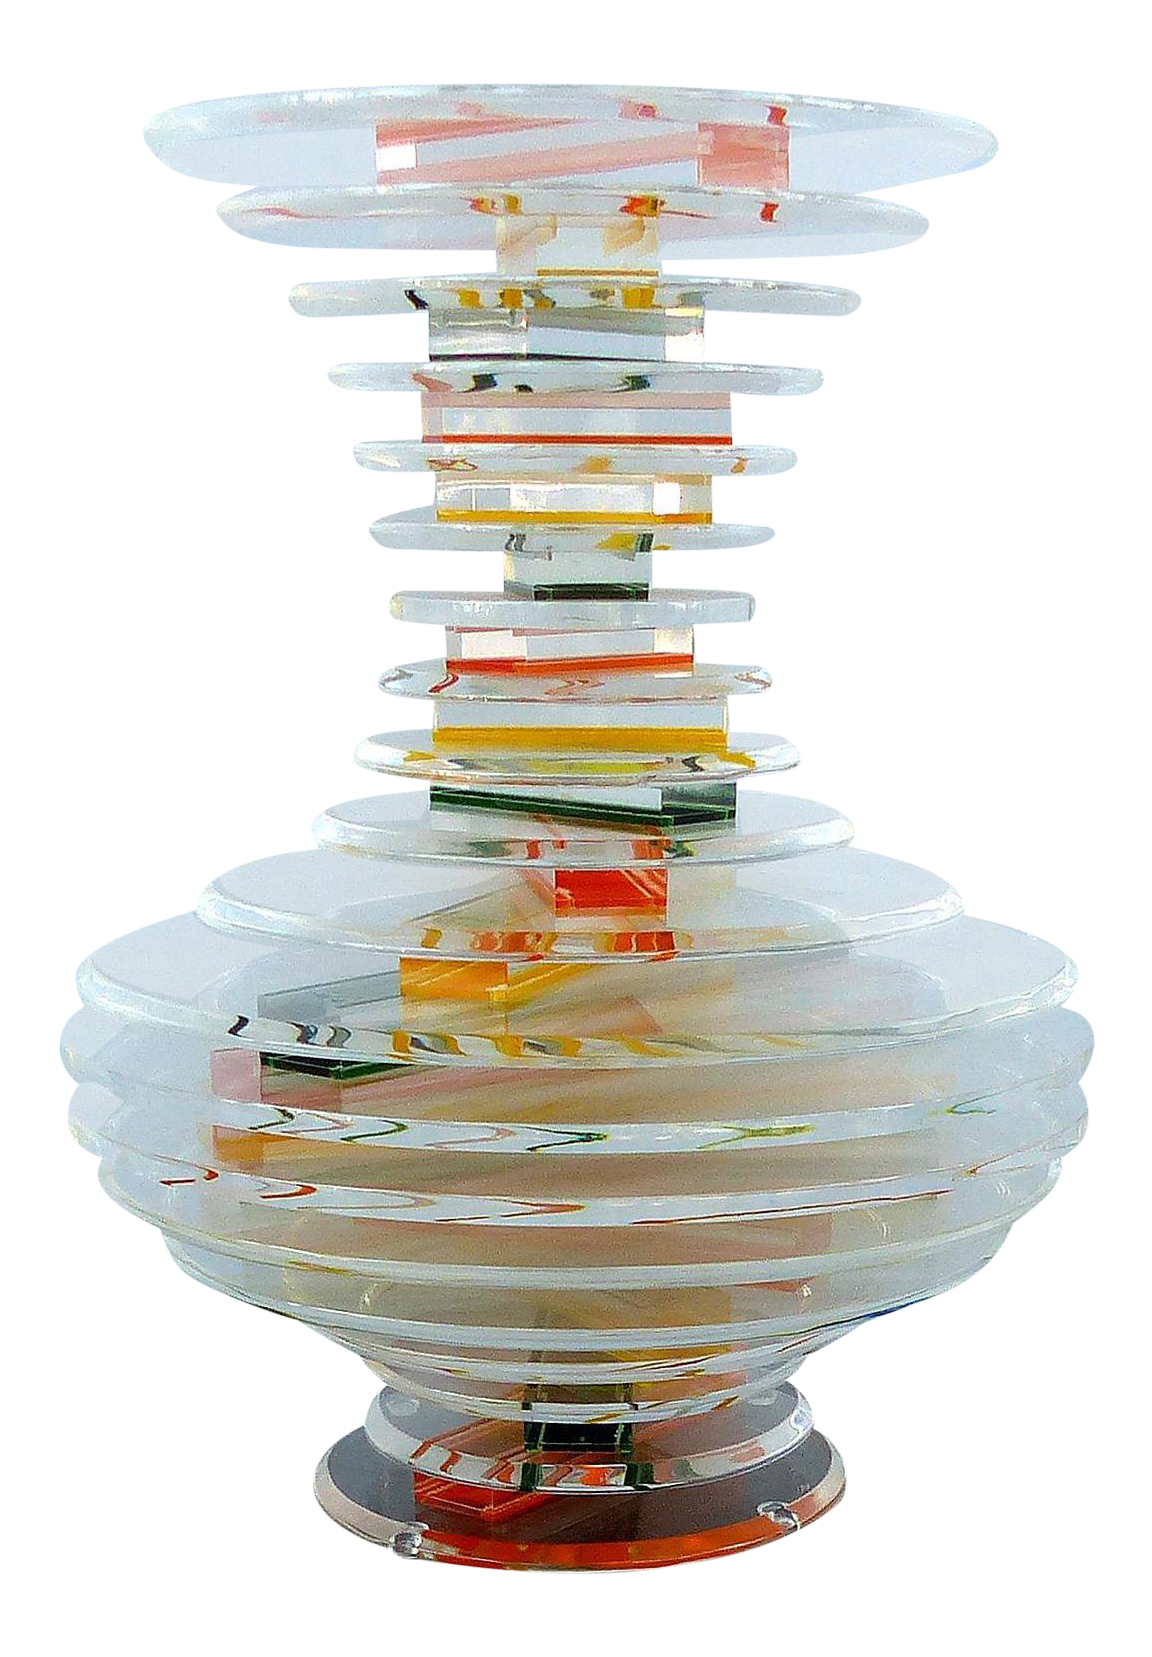 Lucite Sculpture After The Glass Designs Of Sidney Hutter